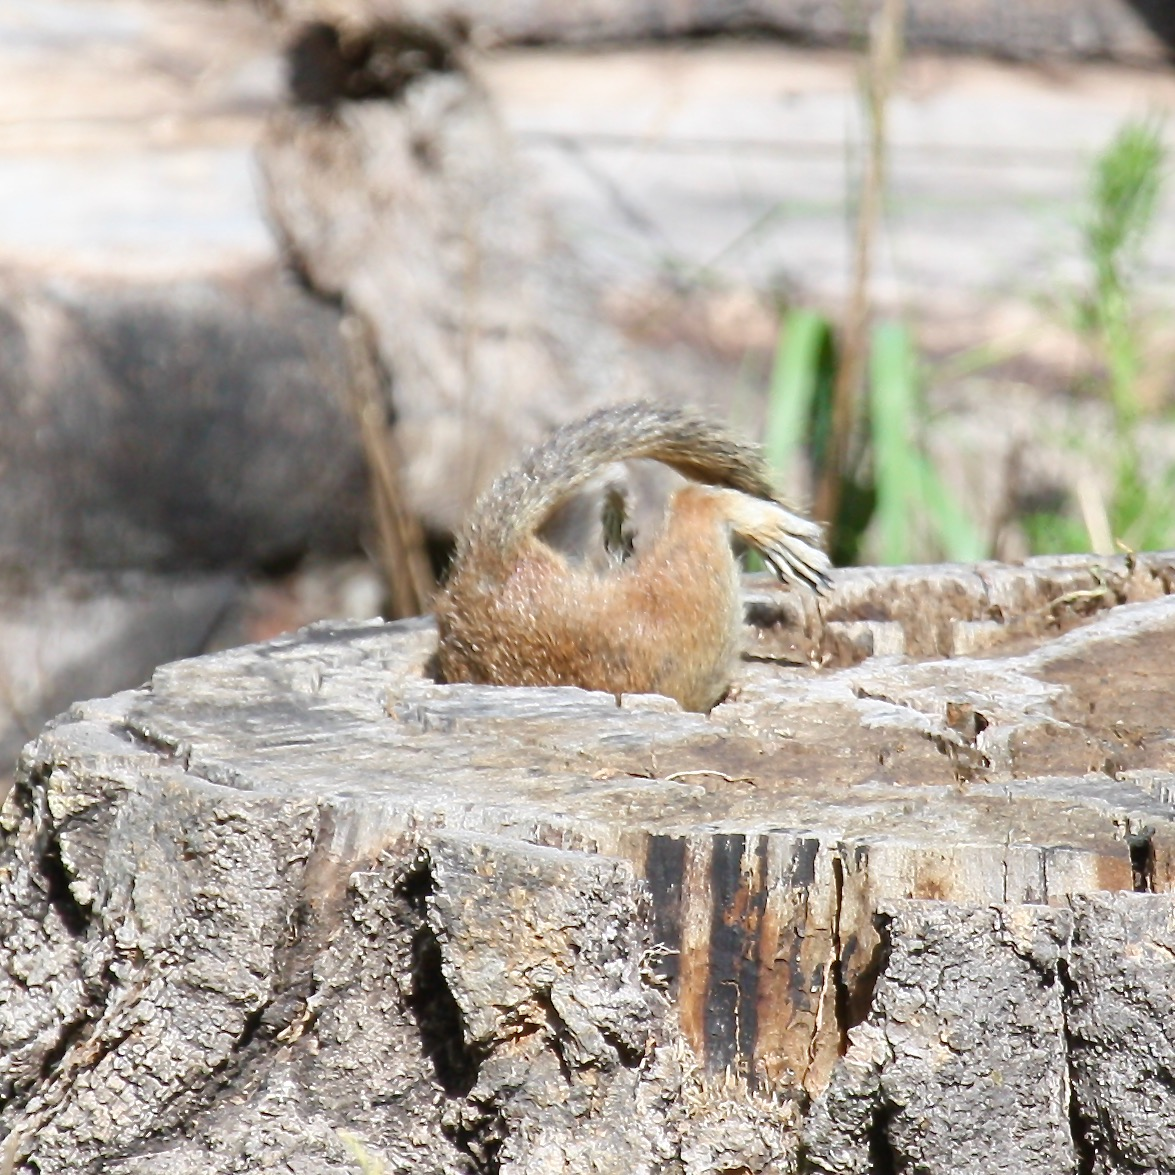 Squirrel5 stump Santa Fe NM 07-2010